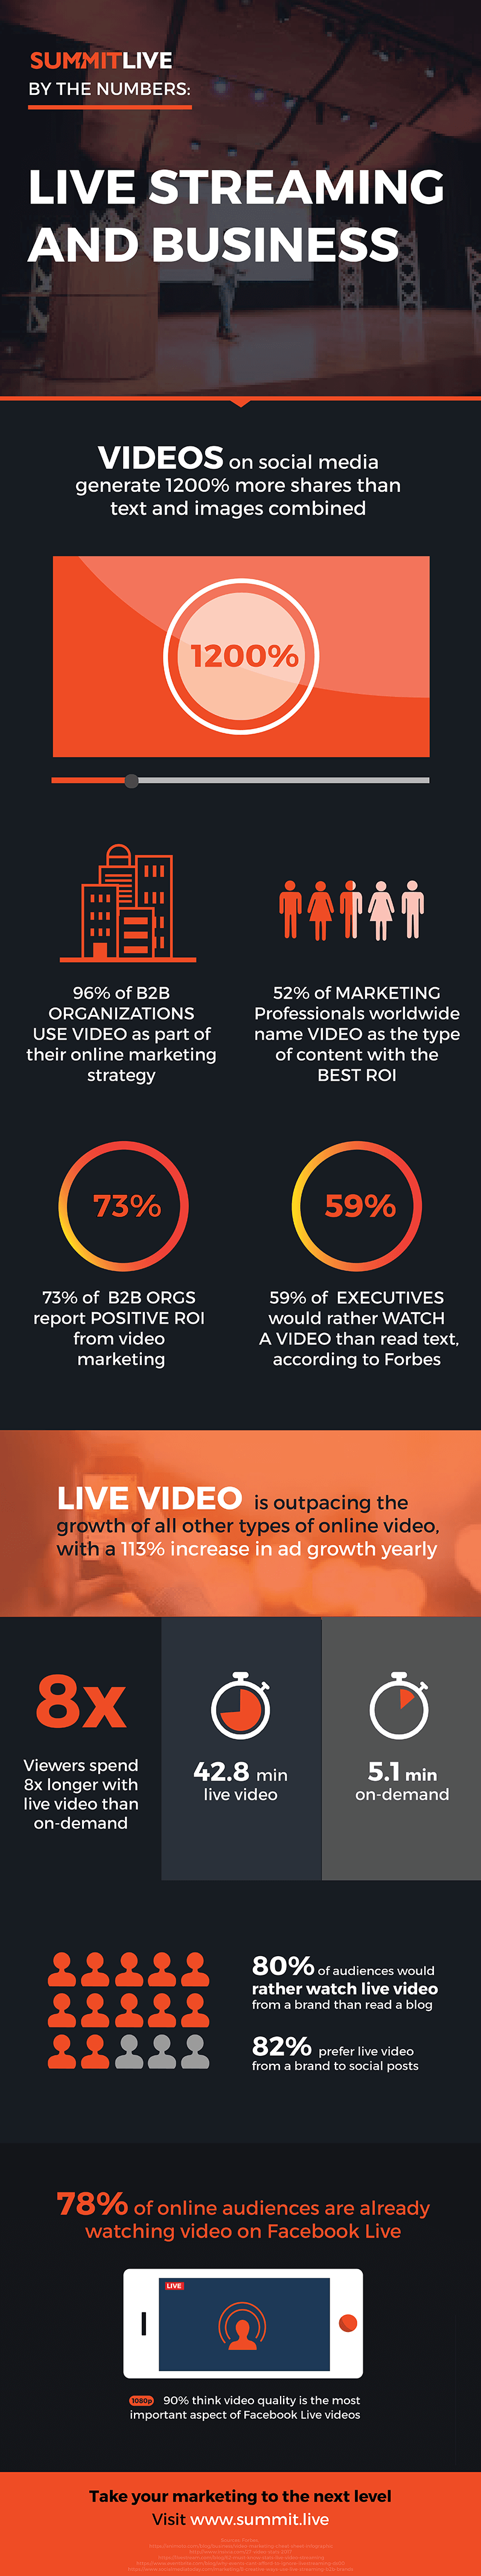 Live video marketing stats